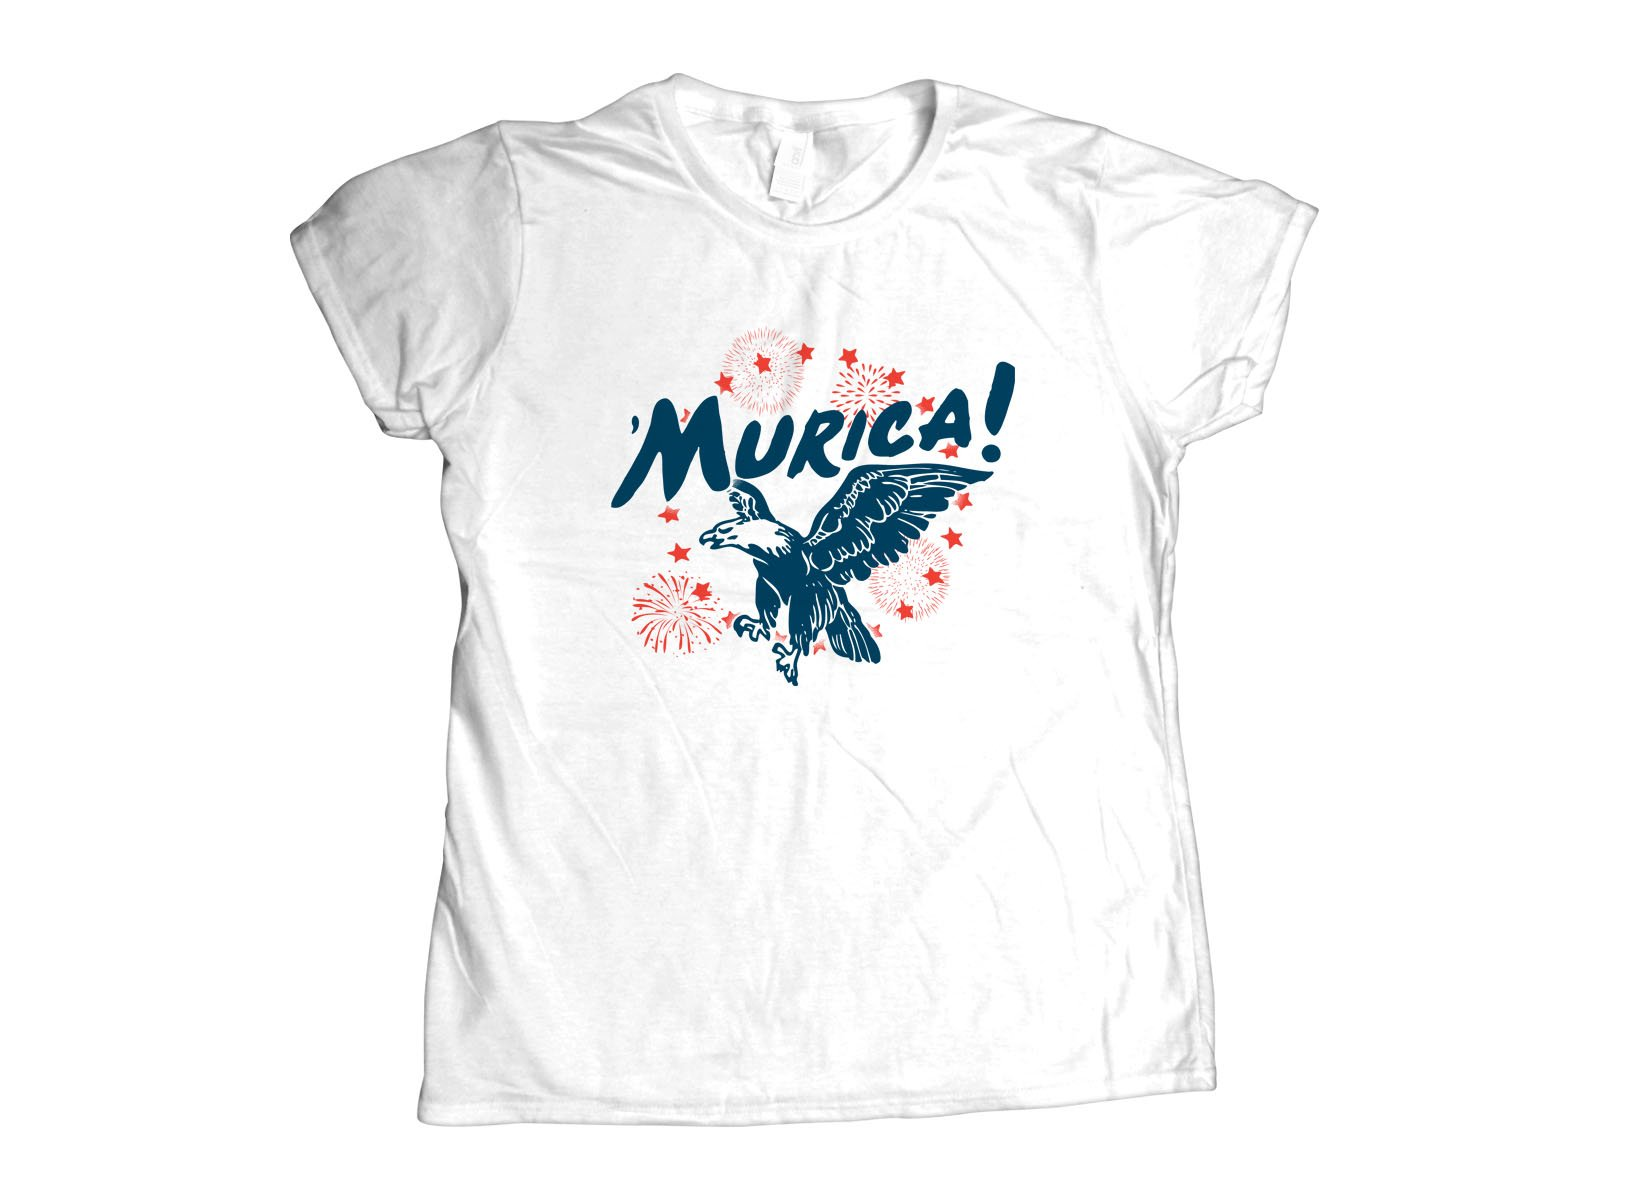 'Murica on Womens T-Shirt